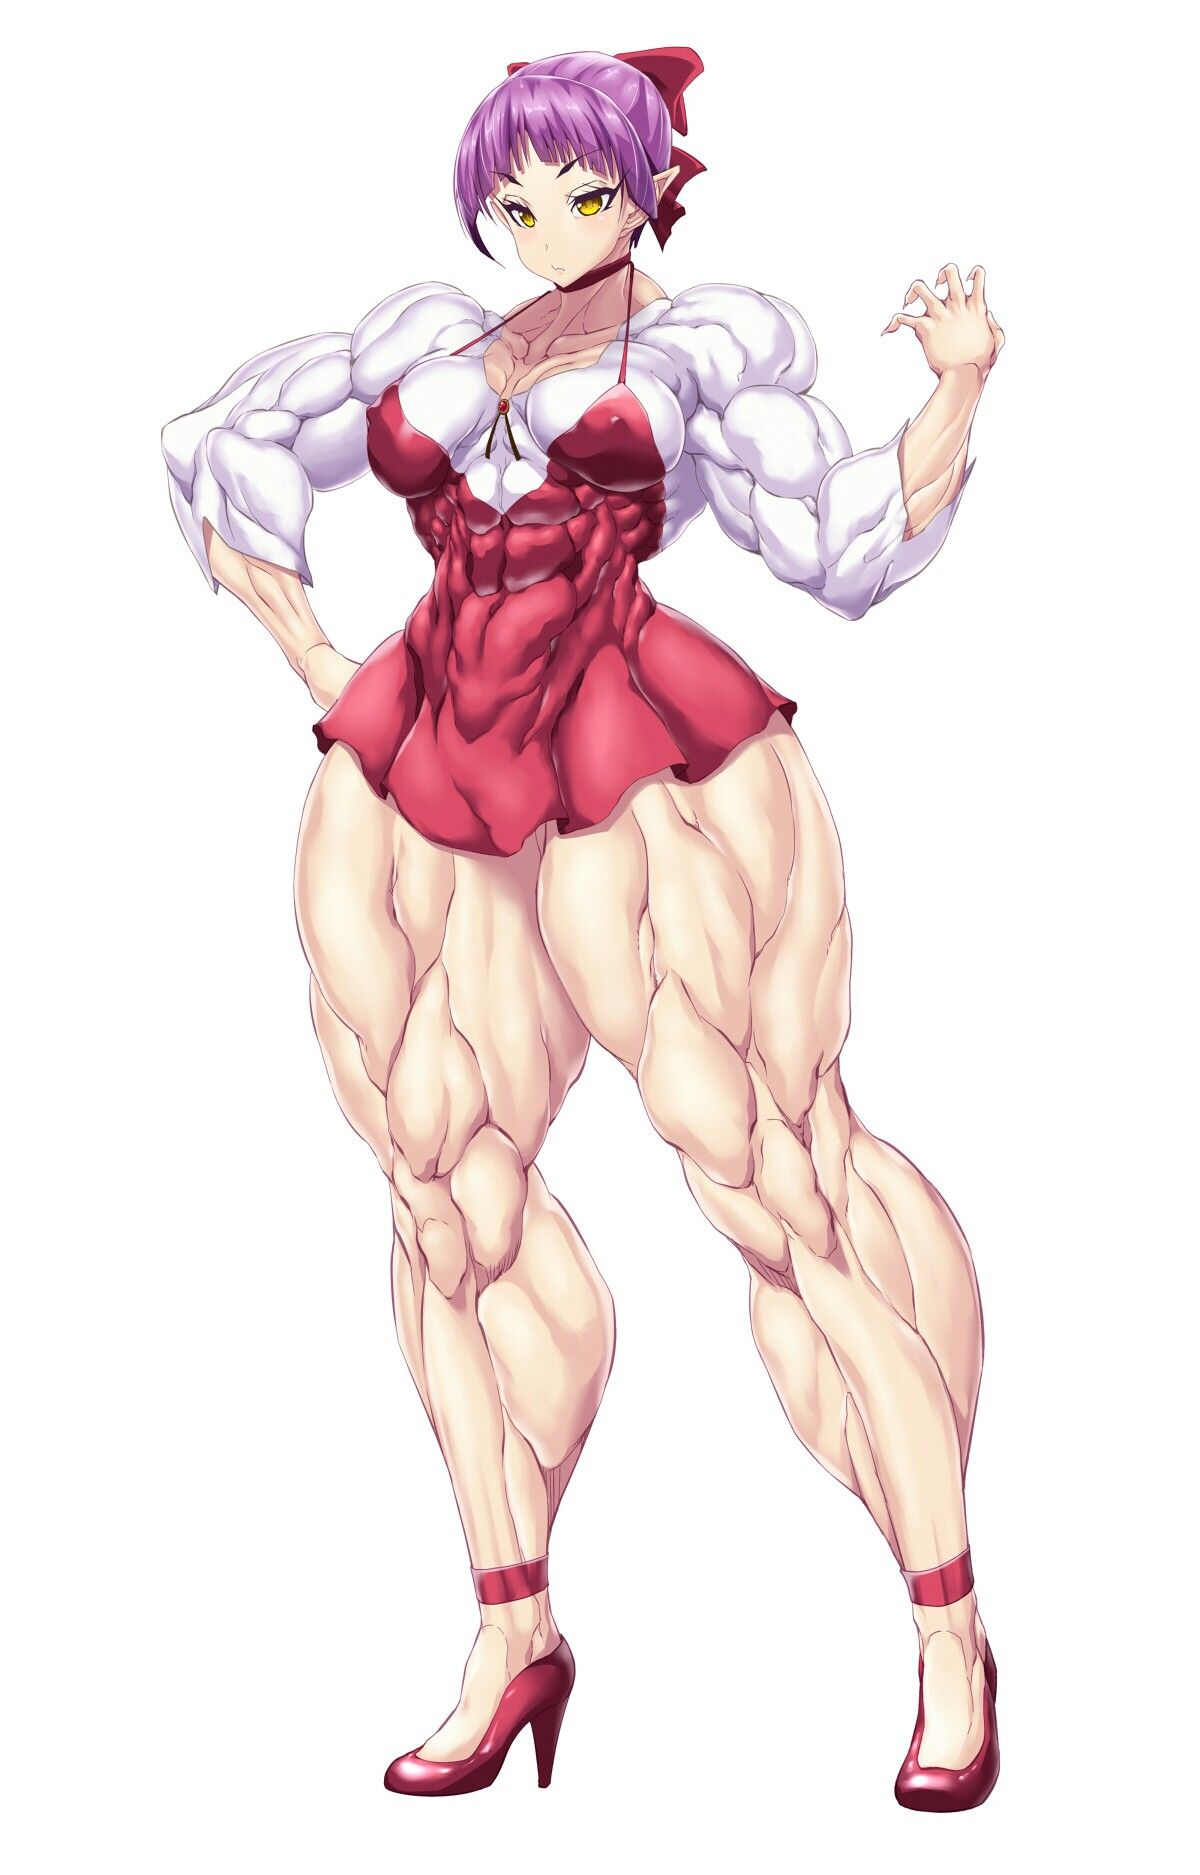 Pin By Enzio On Massive Anime Female Muscle Growth Muscle Girls